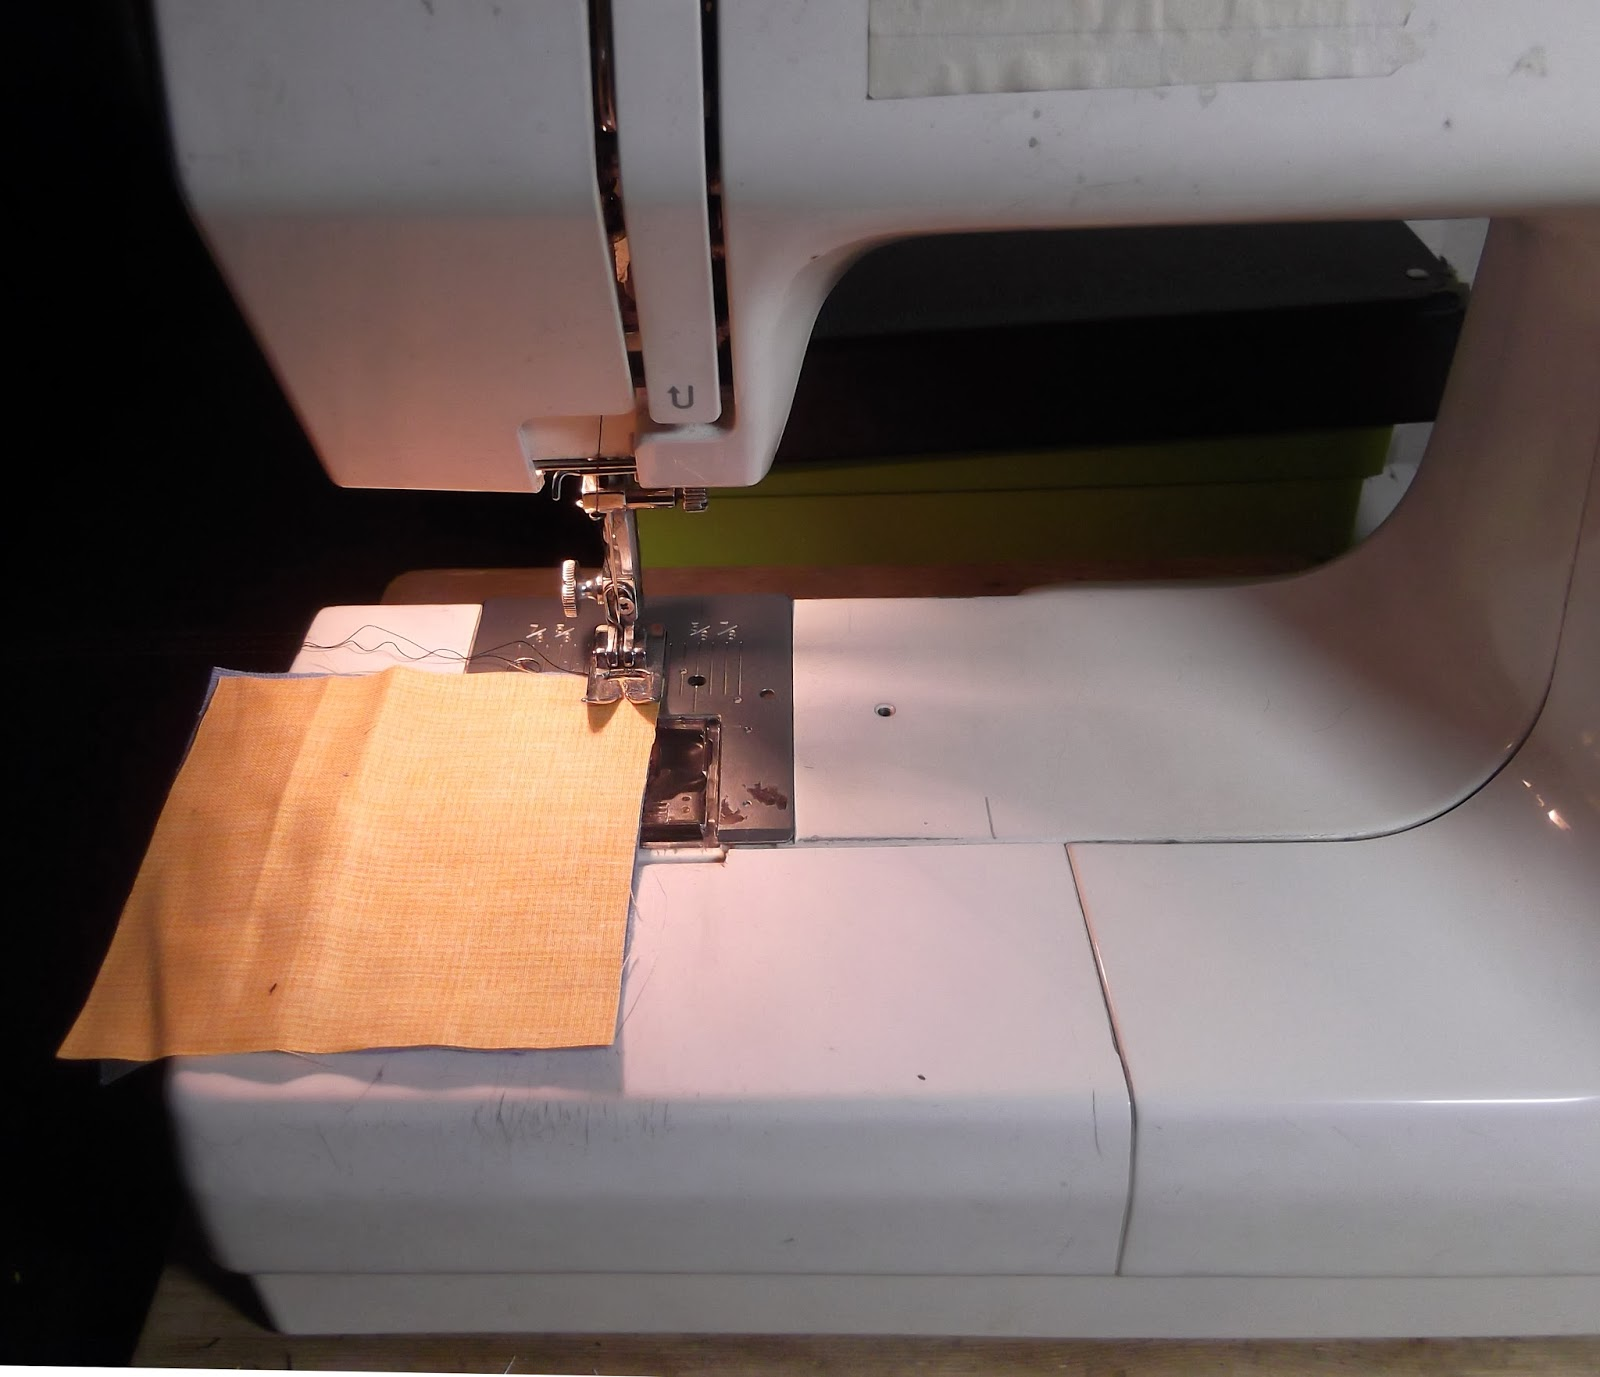 patchwork tutorials, patchwork lessons, patchwork onlike course